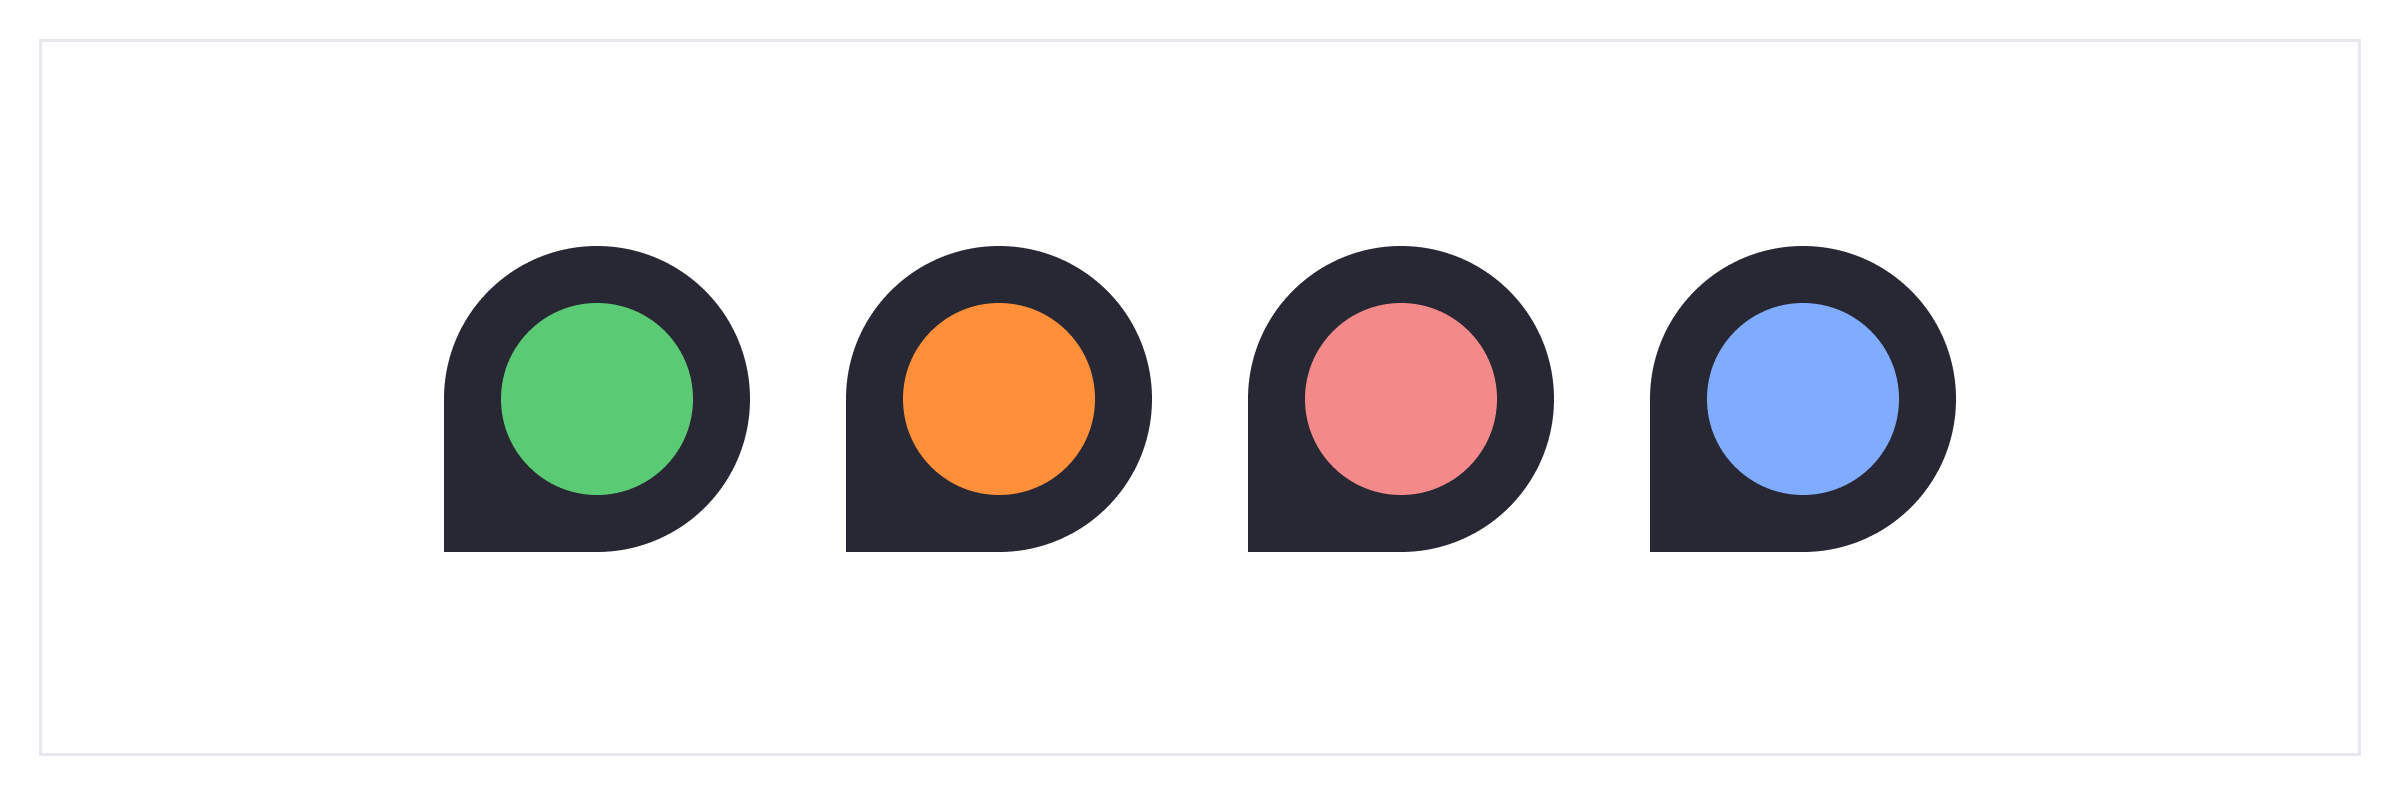 4 shapes with colors inside, used as examples of different color styles